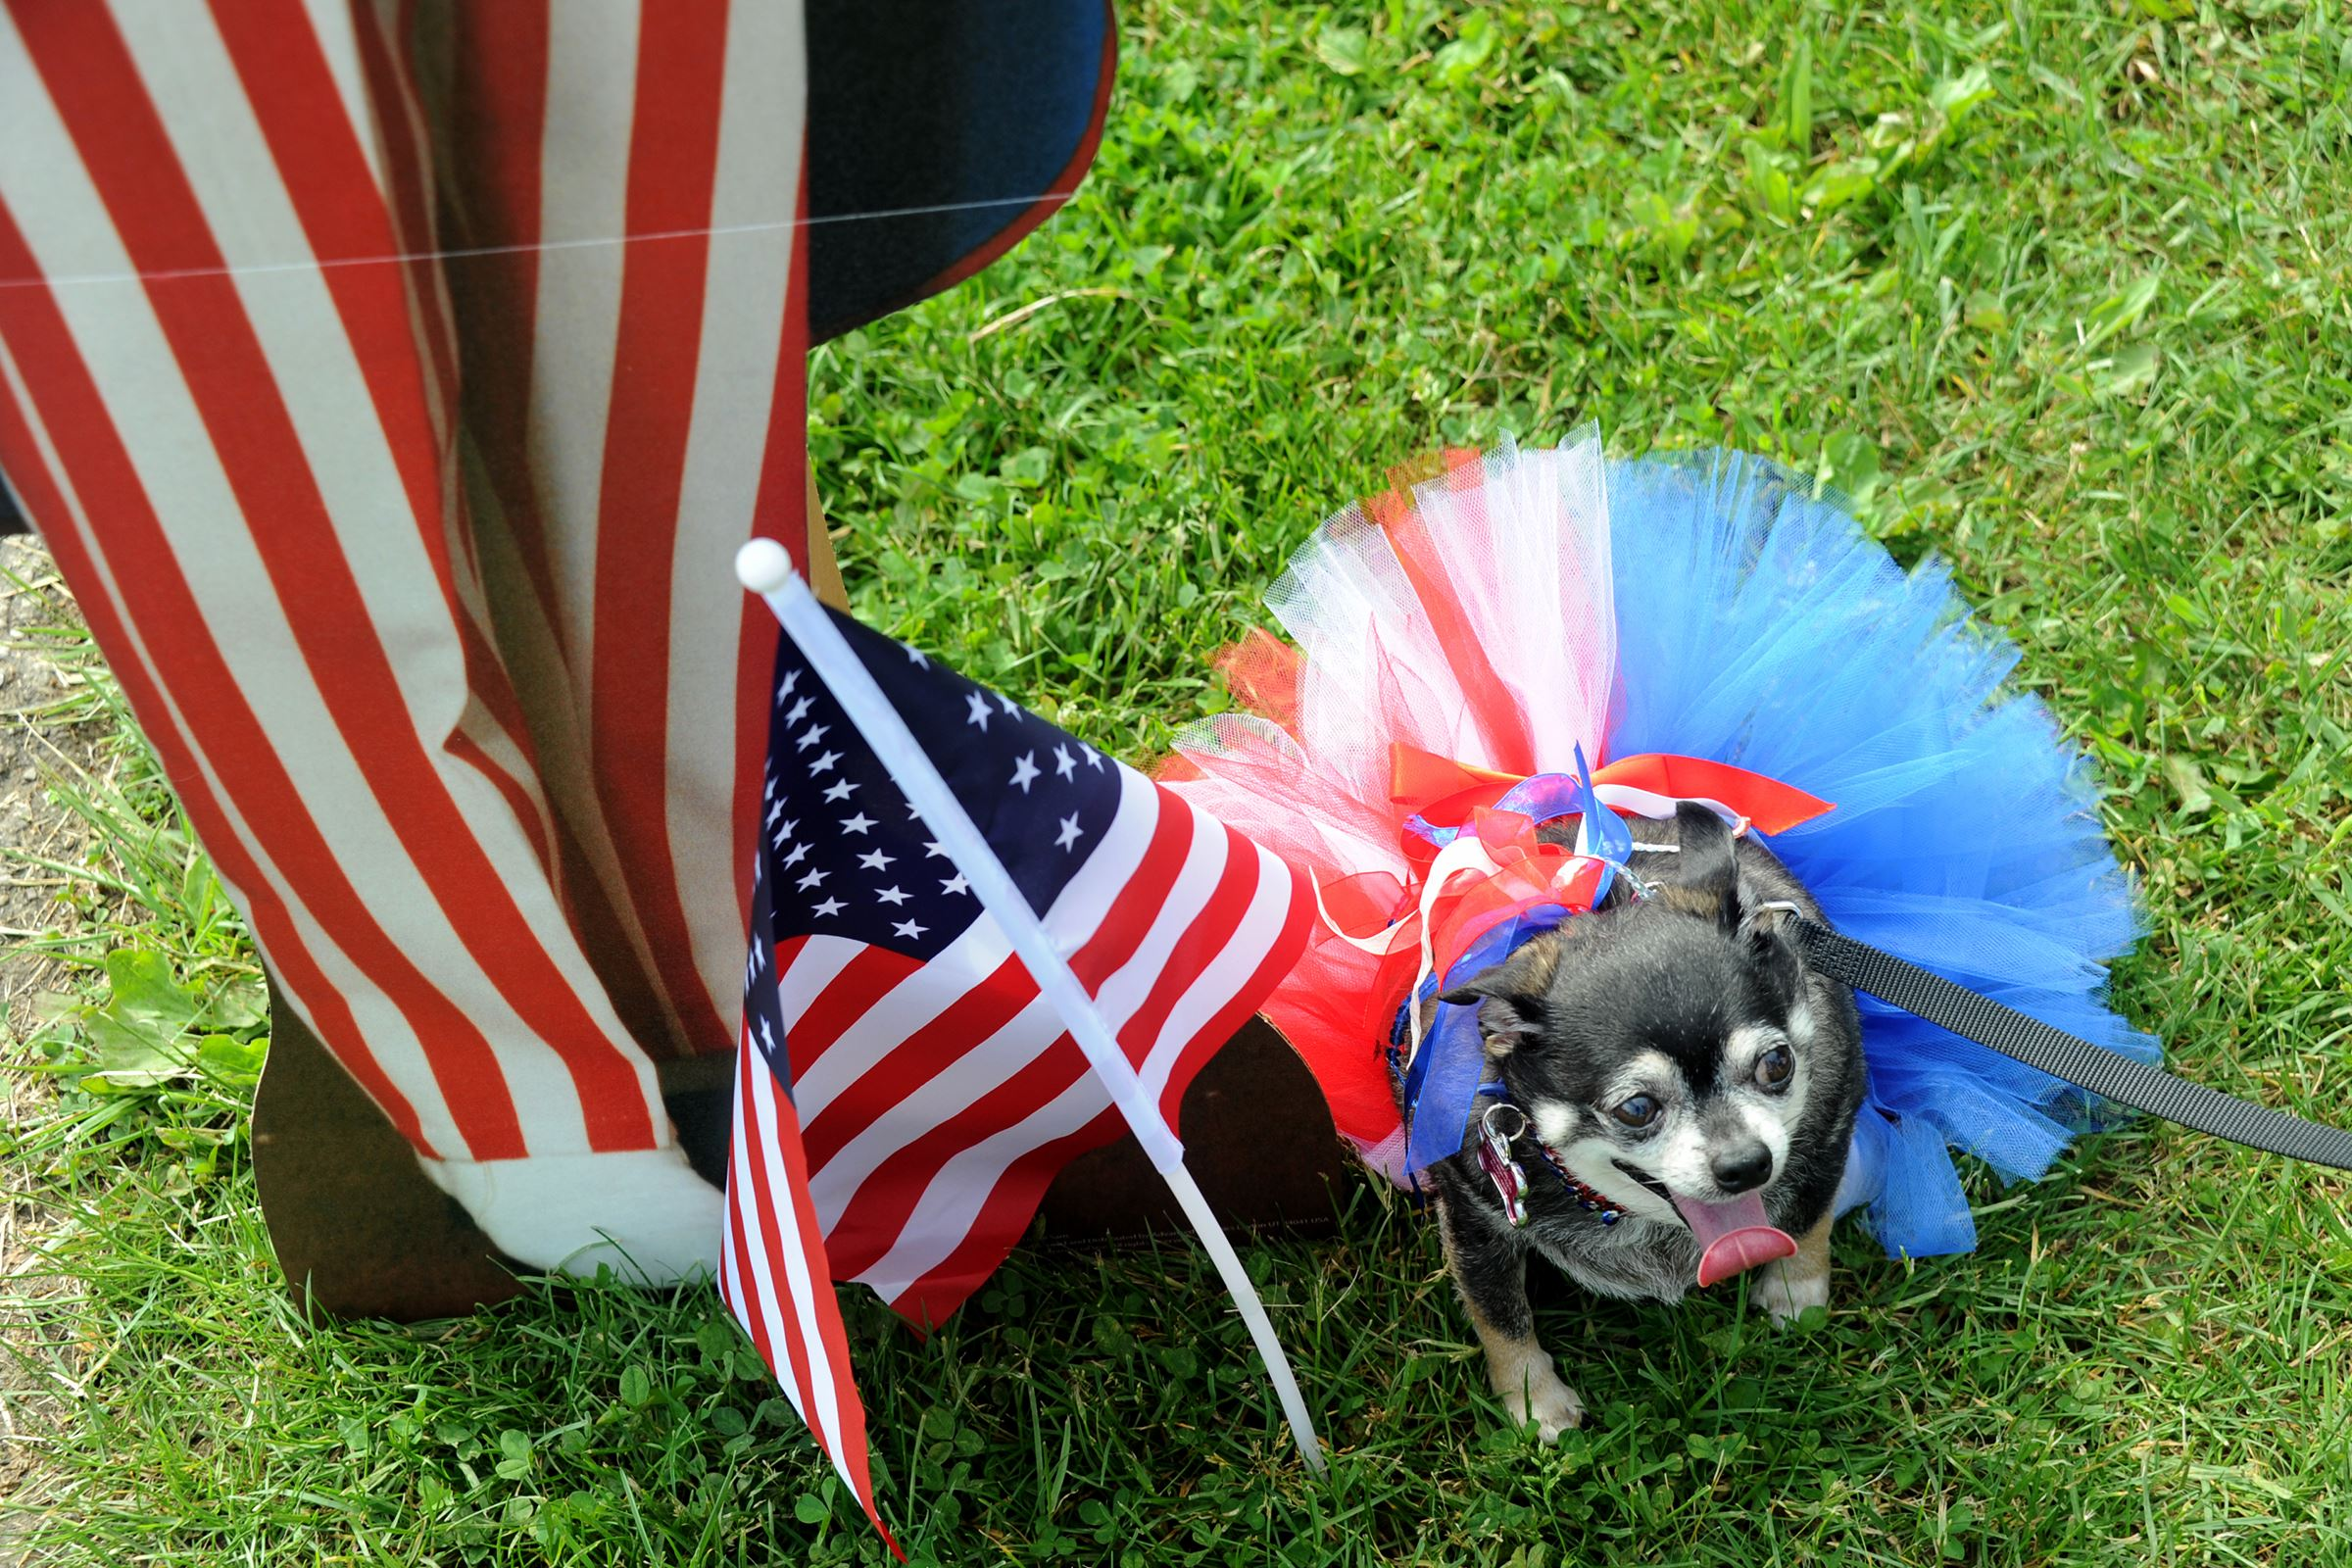 20160528lf-Dogs02-1 Ricki, a 10-year-old Chihuahua adopted by Jackie Schultz of Brookline, shows his patriotic color at the annual Animal Friends Patriotic Pup Parade in North Park on Saturday.